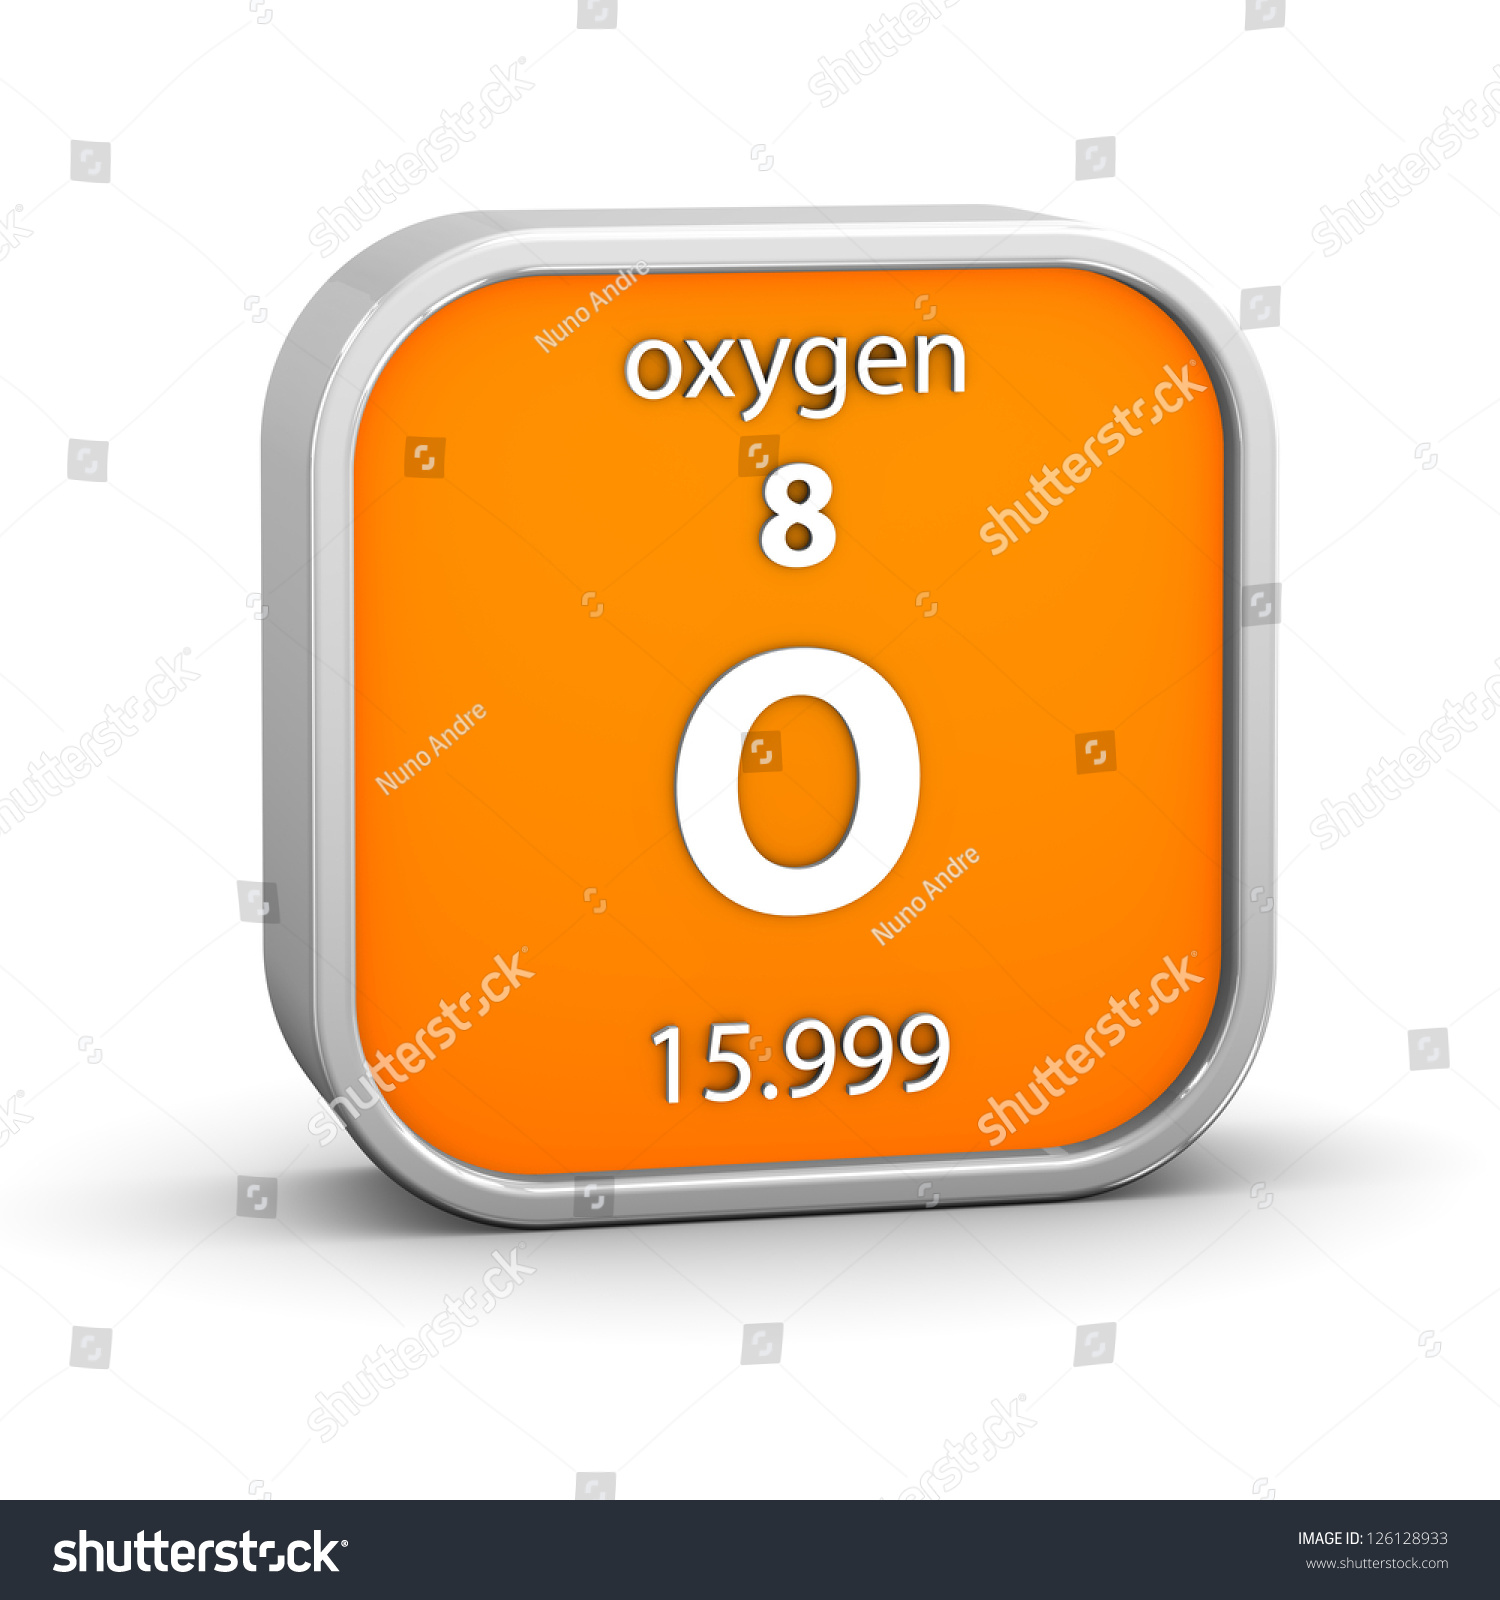 The periodic table oxygen image collections periodic table images the periodic table oxygen gallery periodic table images the periodic table oxygen gallery periodic table images gamestrikefo Images